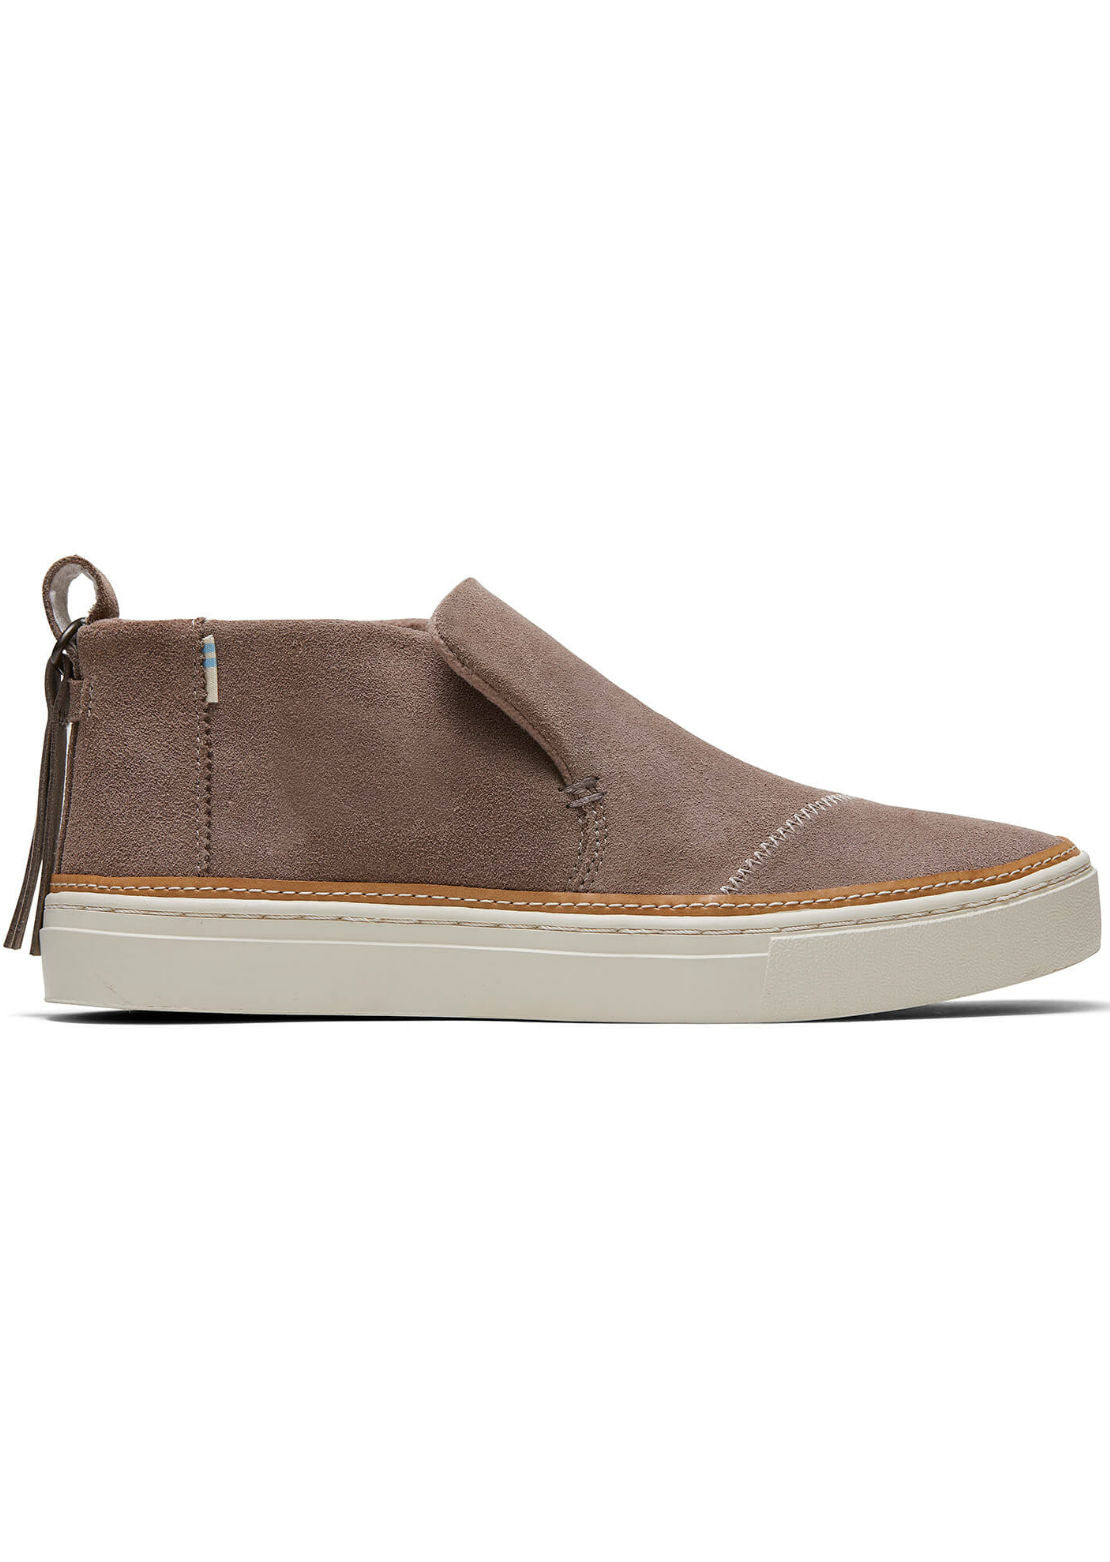 Toms Women's Paxton Shoes